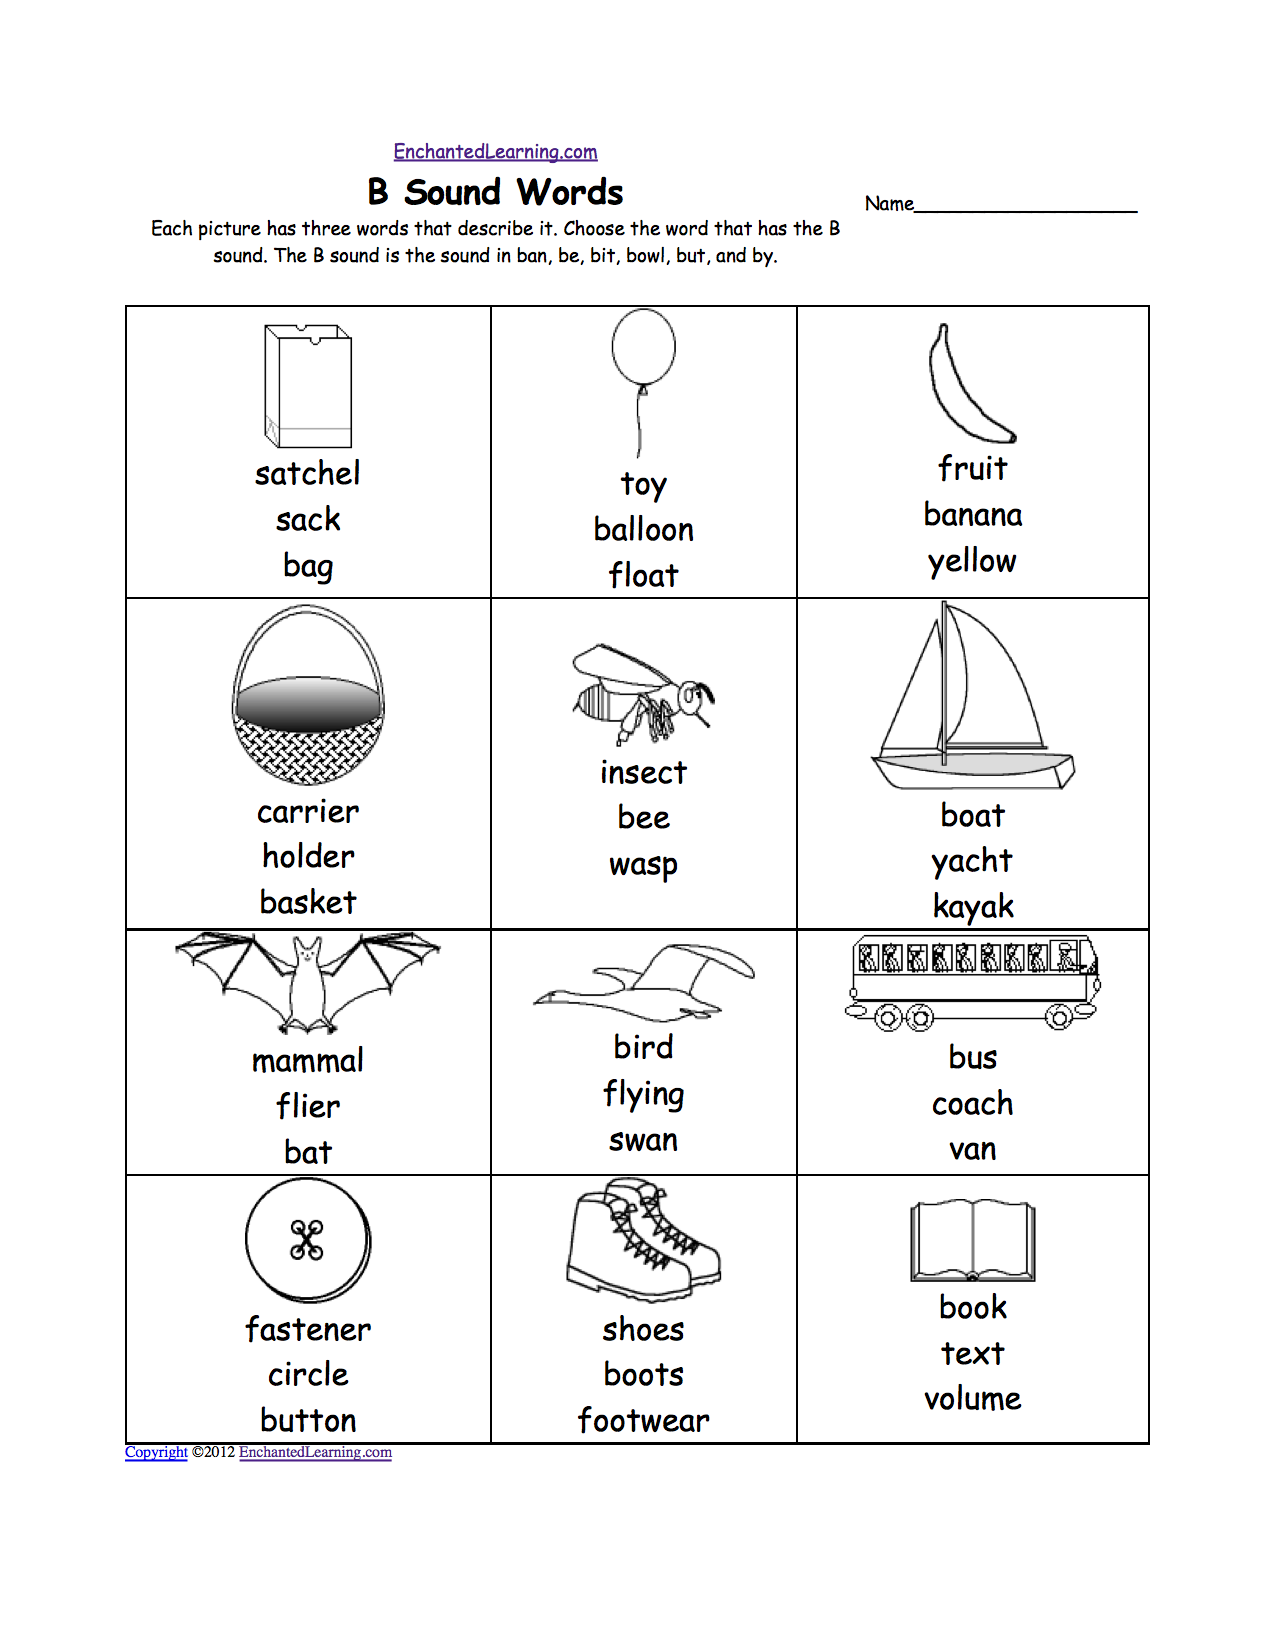 Aldiablosus  Pretty Phonics Worksheets Multiple Choice Worksheets To Print  With Fascinating Quotbquot Sound Phonics Worksheet Multiple Choice Each Picture Has Three Words That Describe It Choose The Word That Has A Quotbquot Sound The Quotbquot Sound Is The Sound  With Cute Letter J Tracing Worksheet Also Blank Ph Scale Worksheet In Addition Gcse Science Revision Worksheets And Judaism For Kids Worksheets As Well As Worksheet On Sets Additionally Long And Short U Worksheets From Enchantedlearningcom With Aldiablosus  Fascinating Phonics Worksheets Multiple Choice Worksheets To Print  With Cute Quotbquot Sound Phonics Worksheet Multiple Choice Each Picture Has Three Words That Describe It Choose The Word That Has A Quotbquot Sound The Quotbquot Sound Is The Sound  And Pretty Letter J Tracing Worksheet Also Blank Ph Scale Worksheet In Addition Gcse Science Revision Worksheets From Enchantedlearningcom